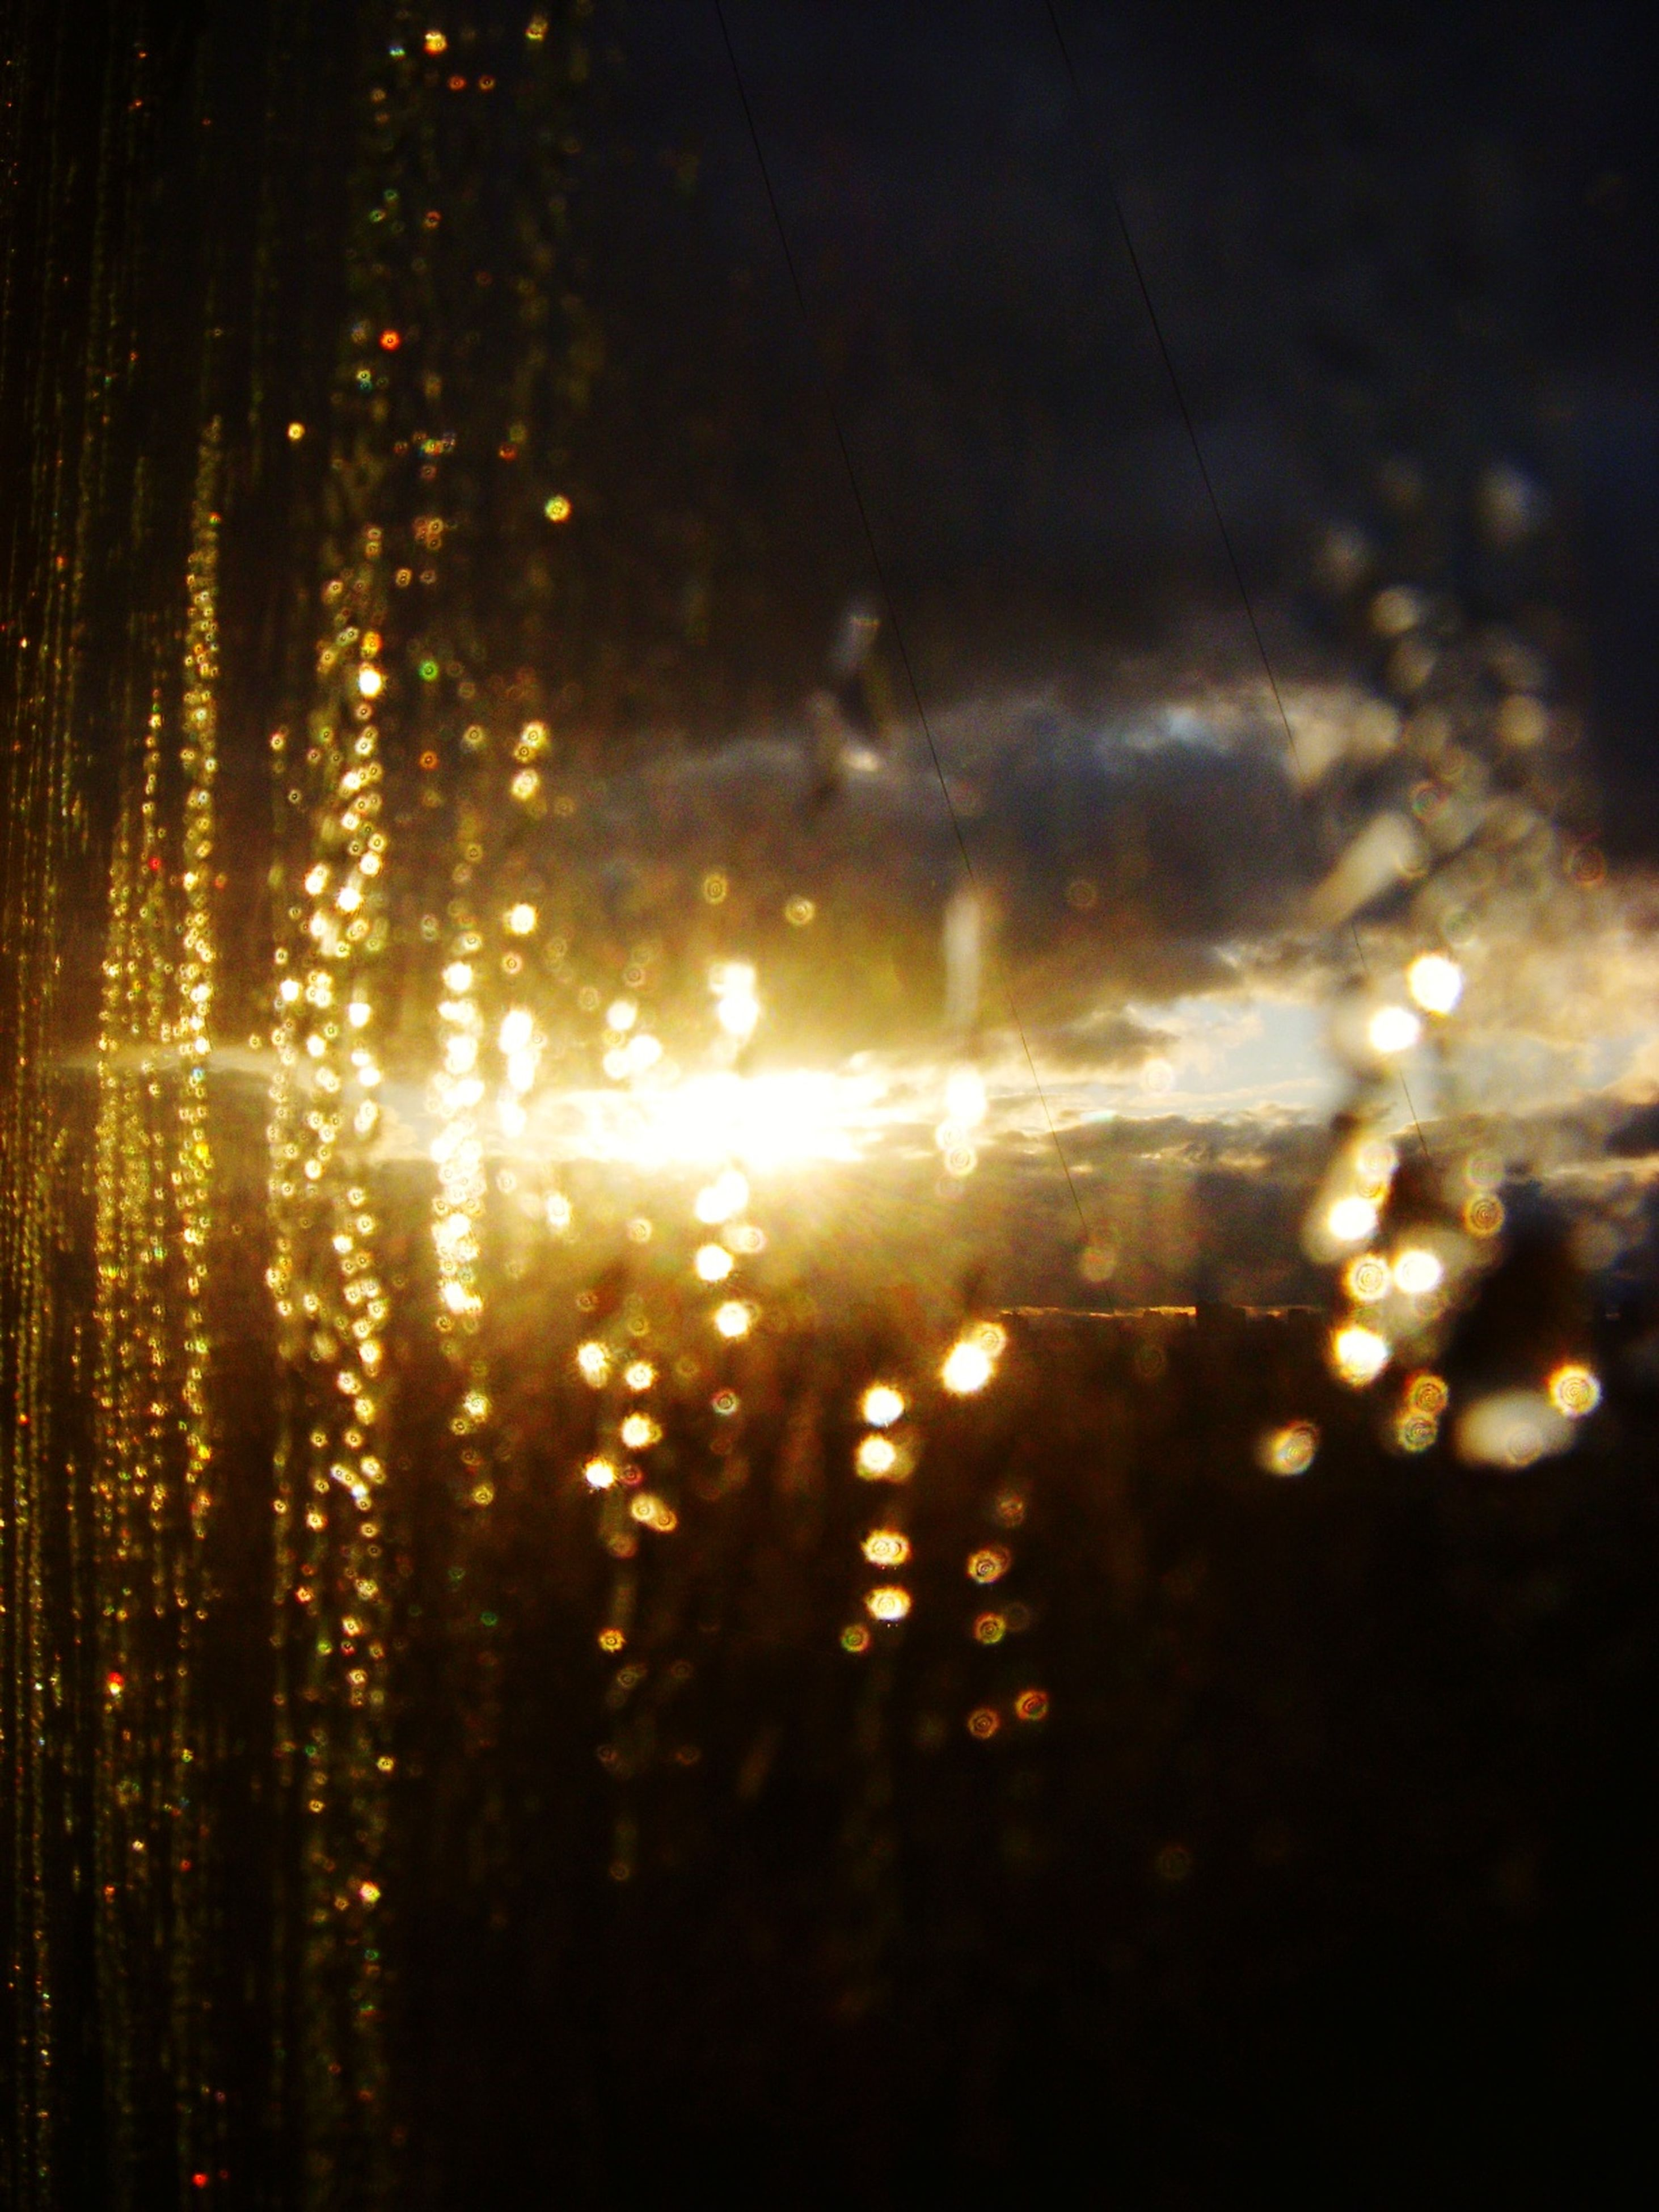 wet, window, rain, drop, water, sunset, night, transparent, glass - material, sun, illuminated, silhouette, sky, lens flare, backgrounds, full frame, raindrop, weather, no people, reflection